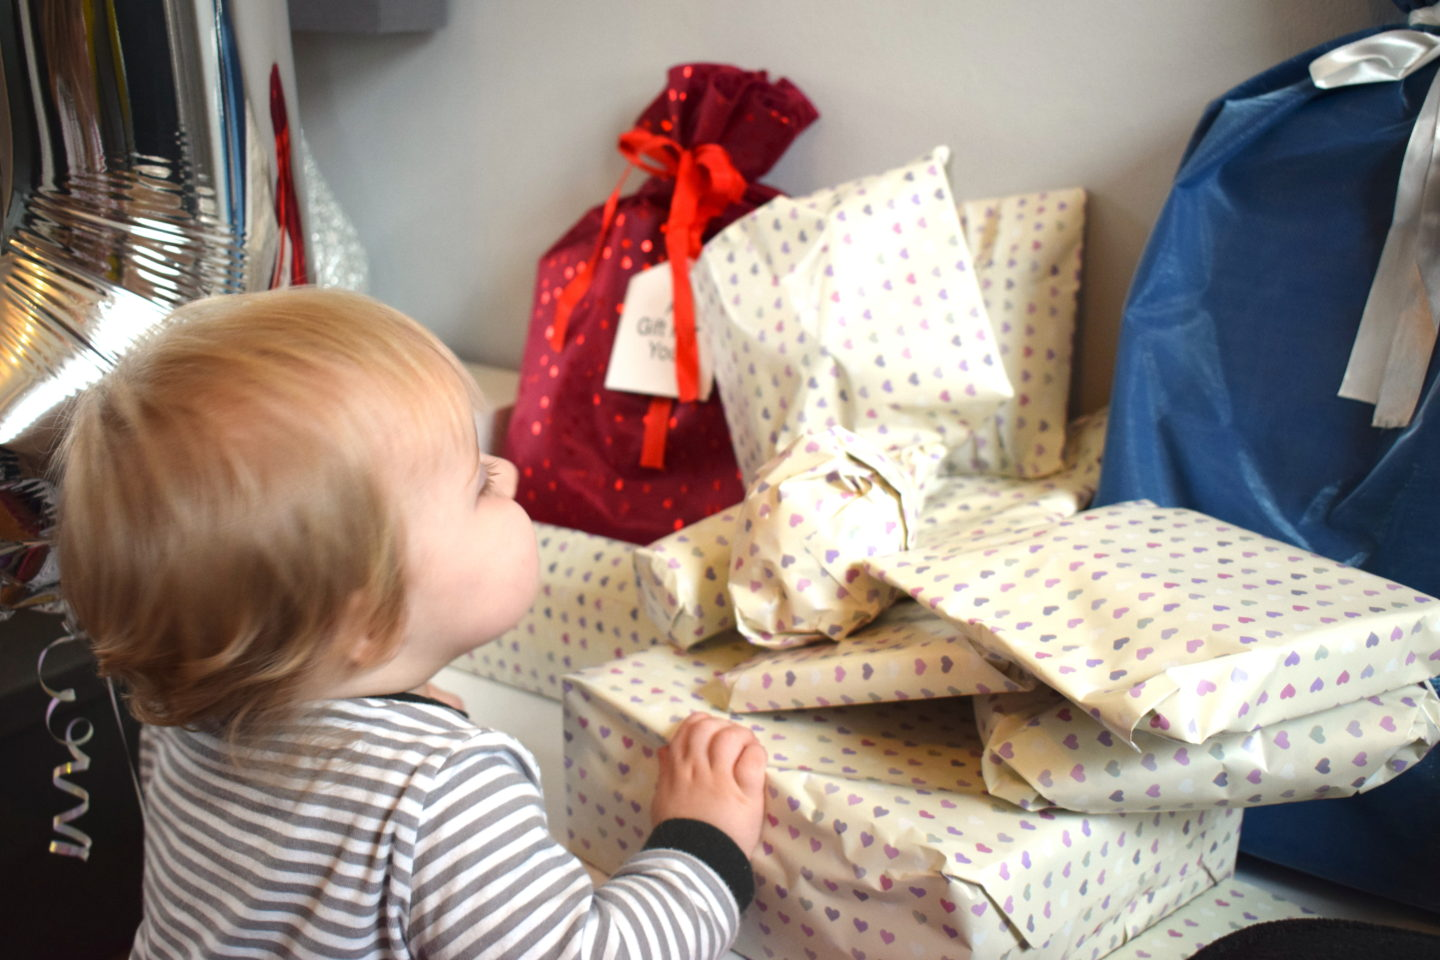 one year old girl, looking at pile of birthday presents